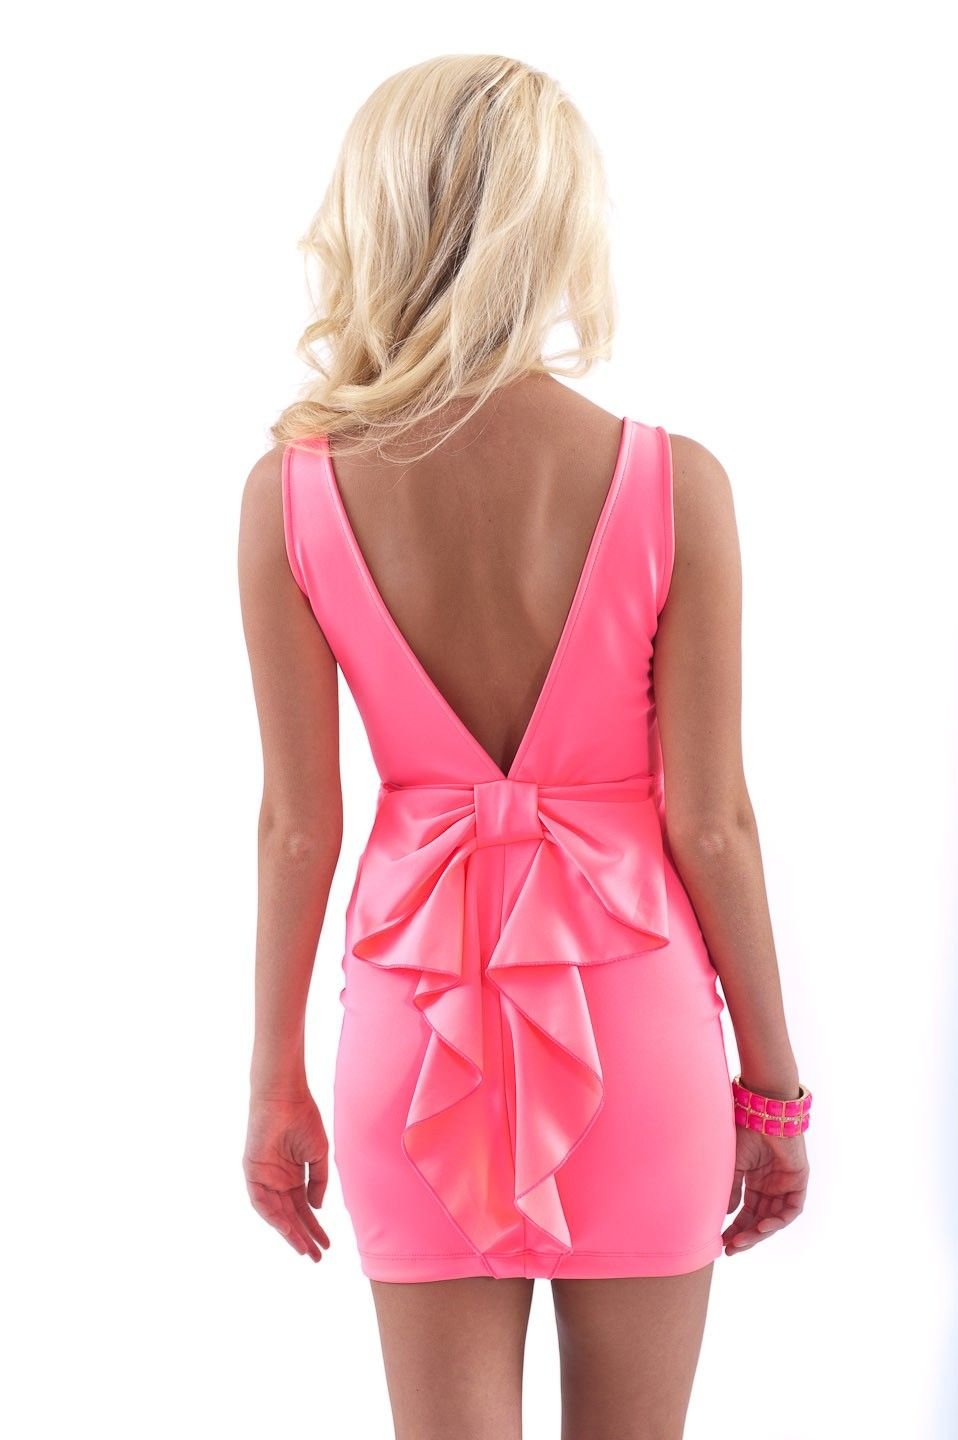 Hide and Bow Chic Dress-Neon Pink - Dresses | Clothes | Pinterest ...